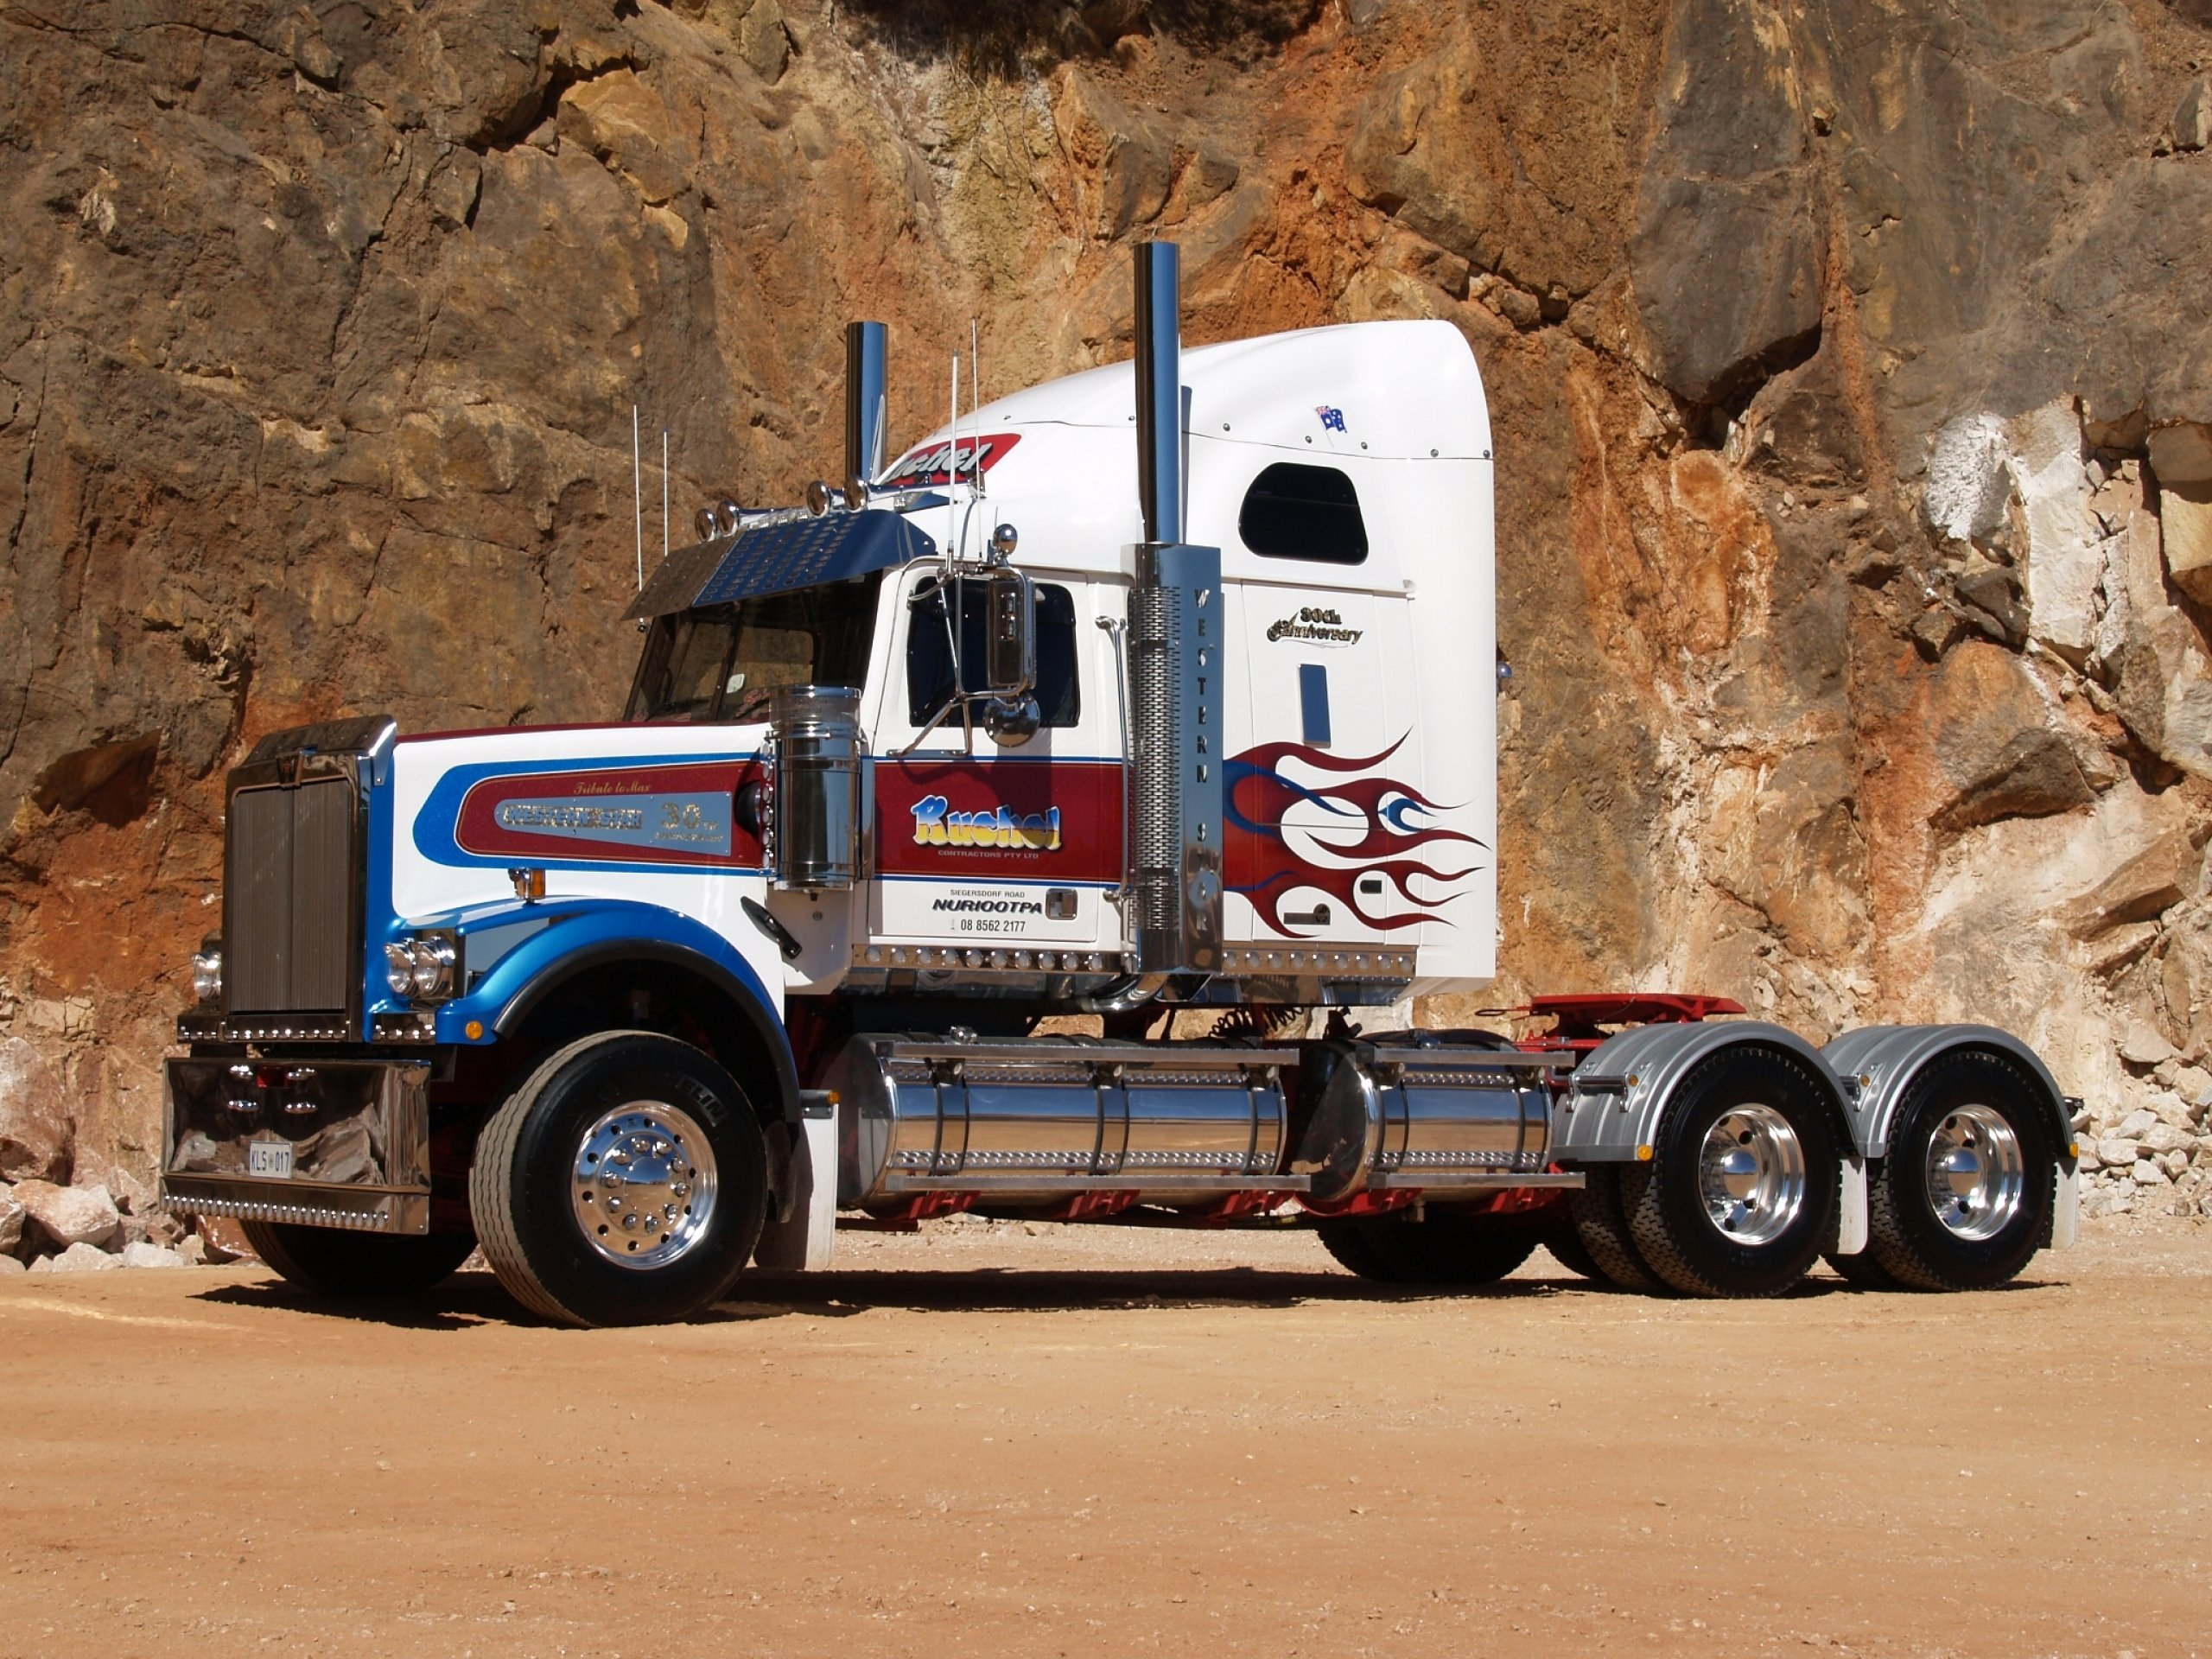 western star semi tractor transport wallpaper 2560x1920 796694 wallpaperup. Black Bedroom Furniture Sets. Home Design Ideas